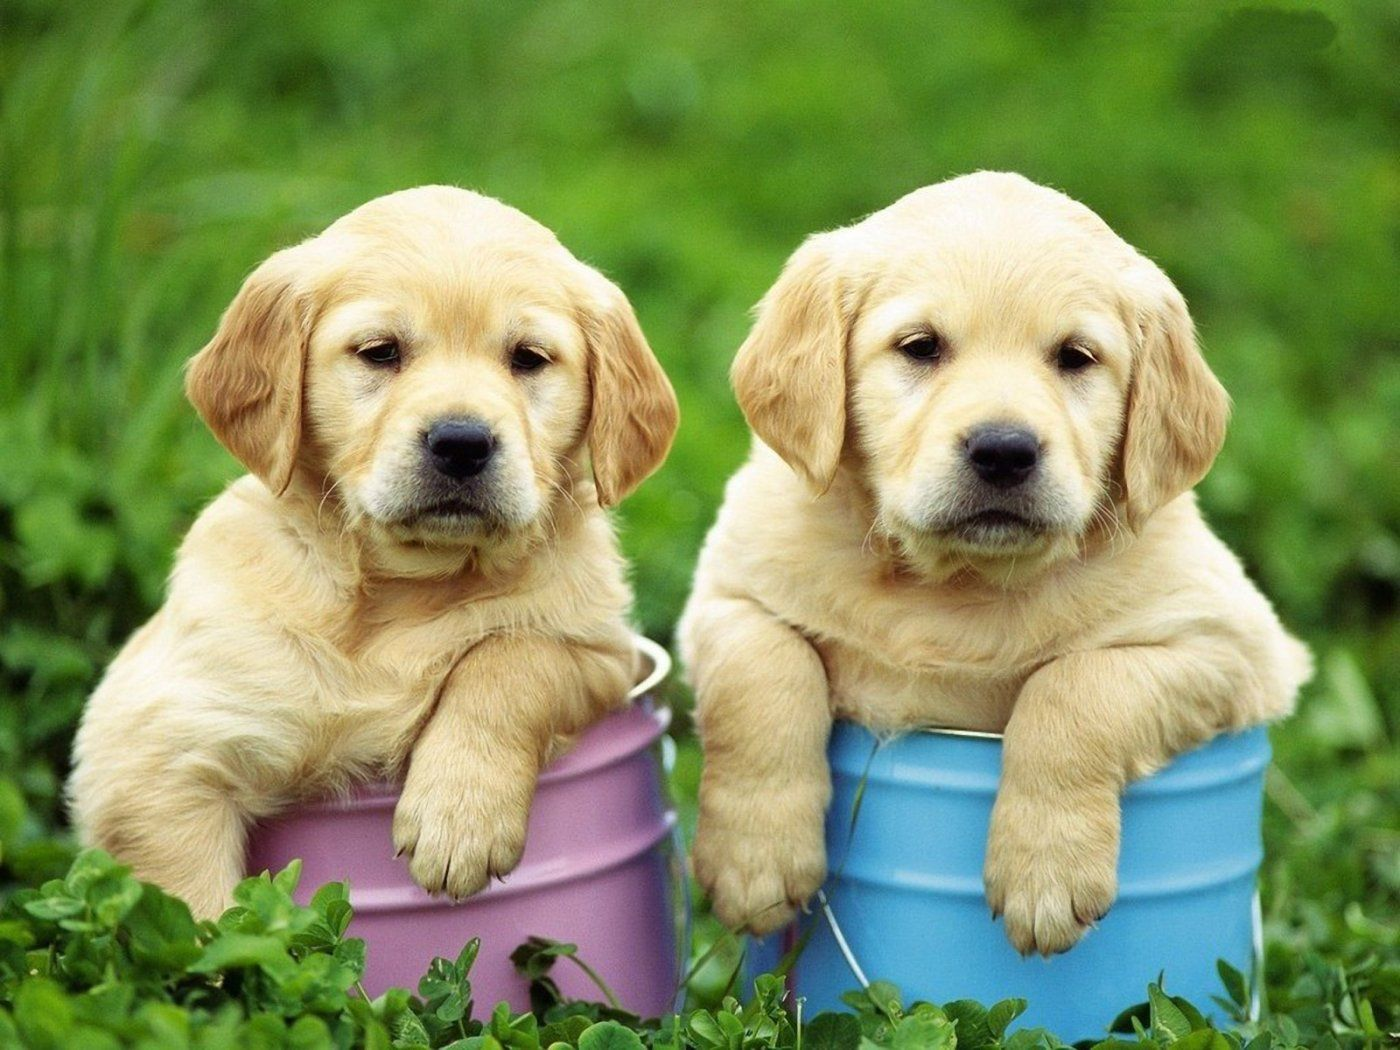 Golden Retriever Puppies. For more cute puppies, check out